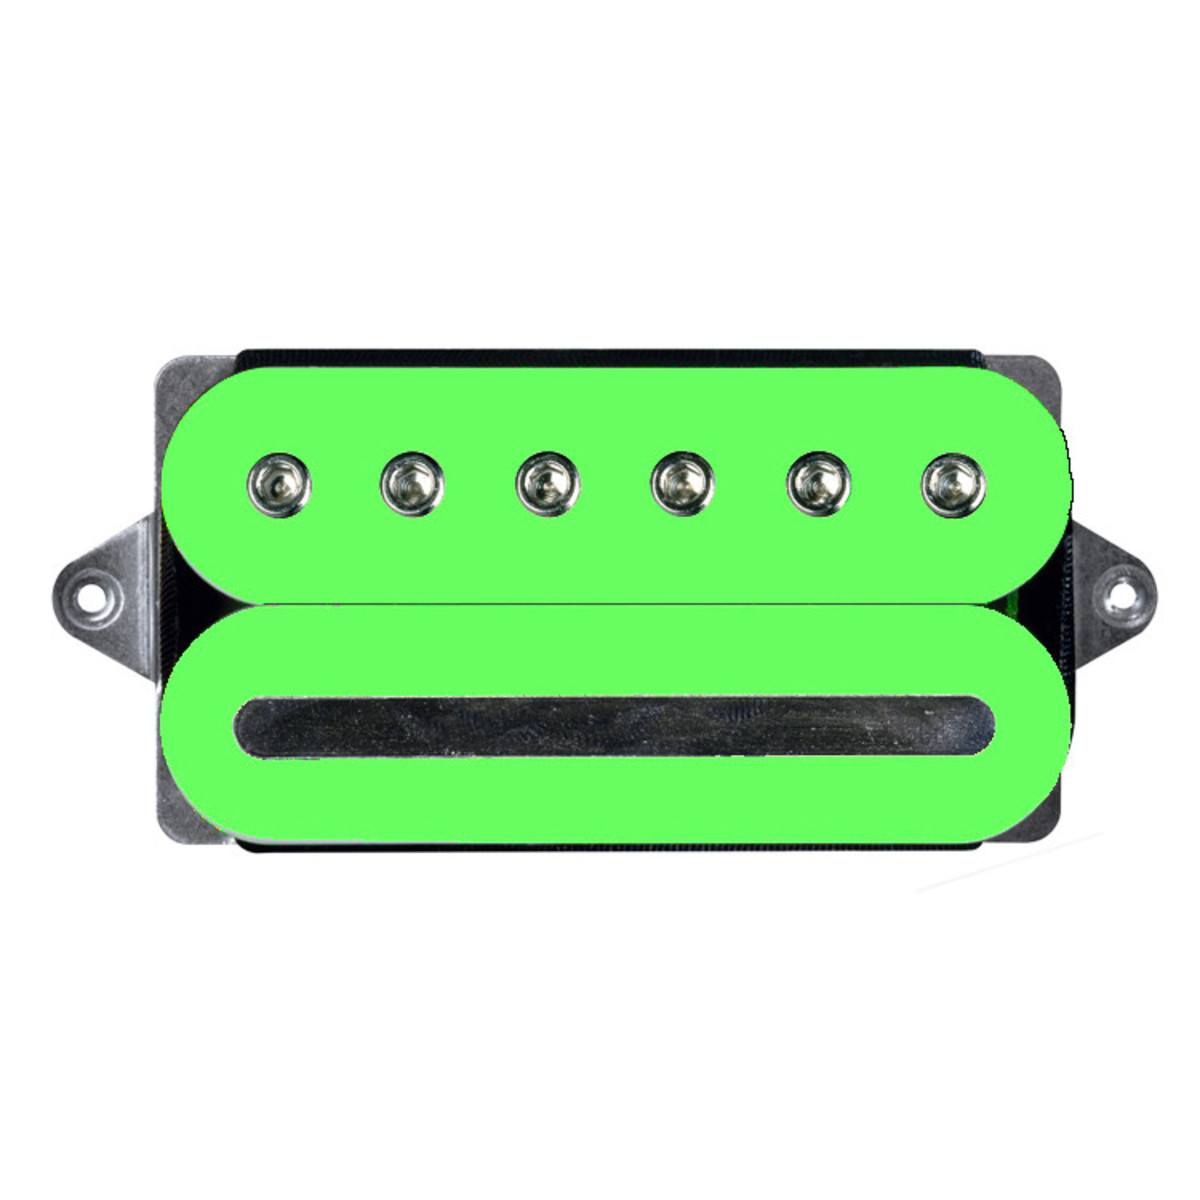 DiMarzio DP228 Crunch Lab F Spaced Humbucker Guitar Pickup, Green ...